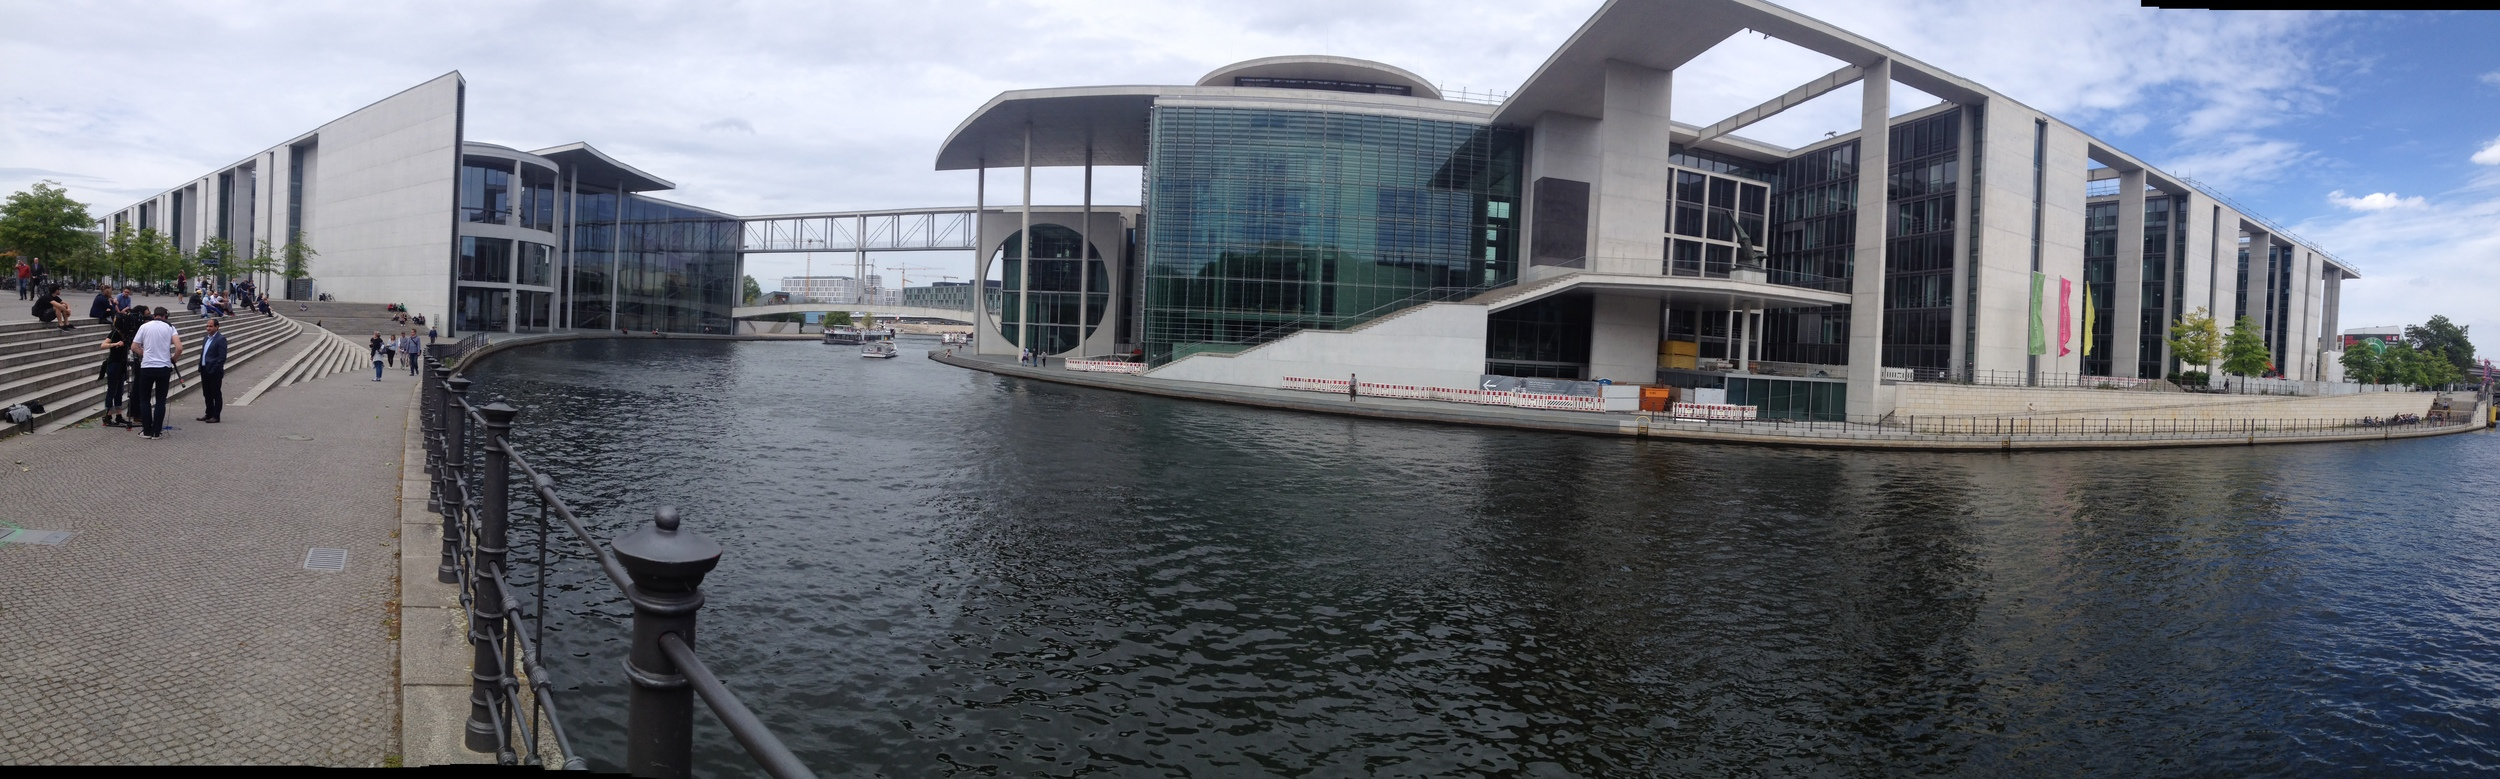 View of the Marie-Elisabeth Lüders-Haus and The Spree